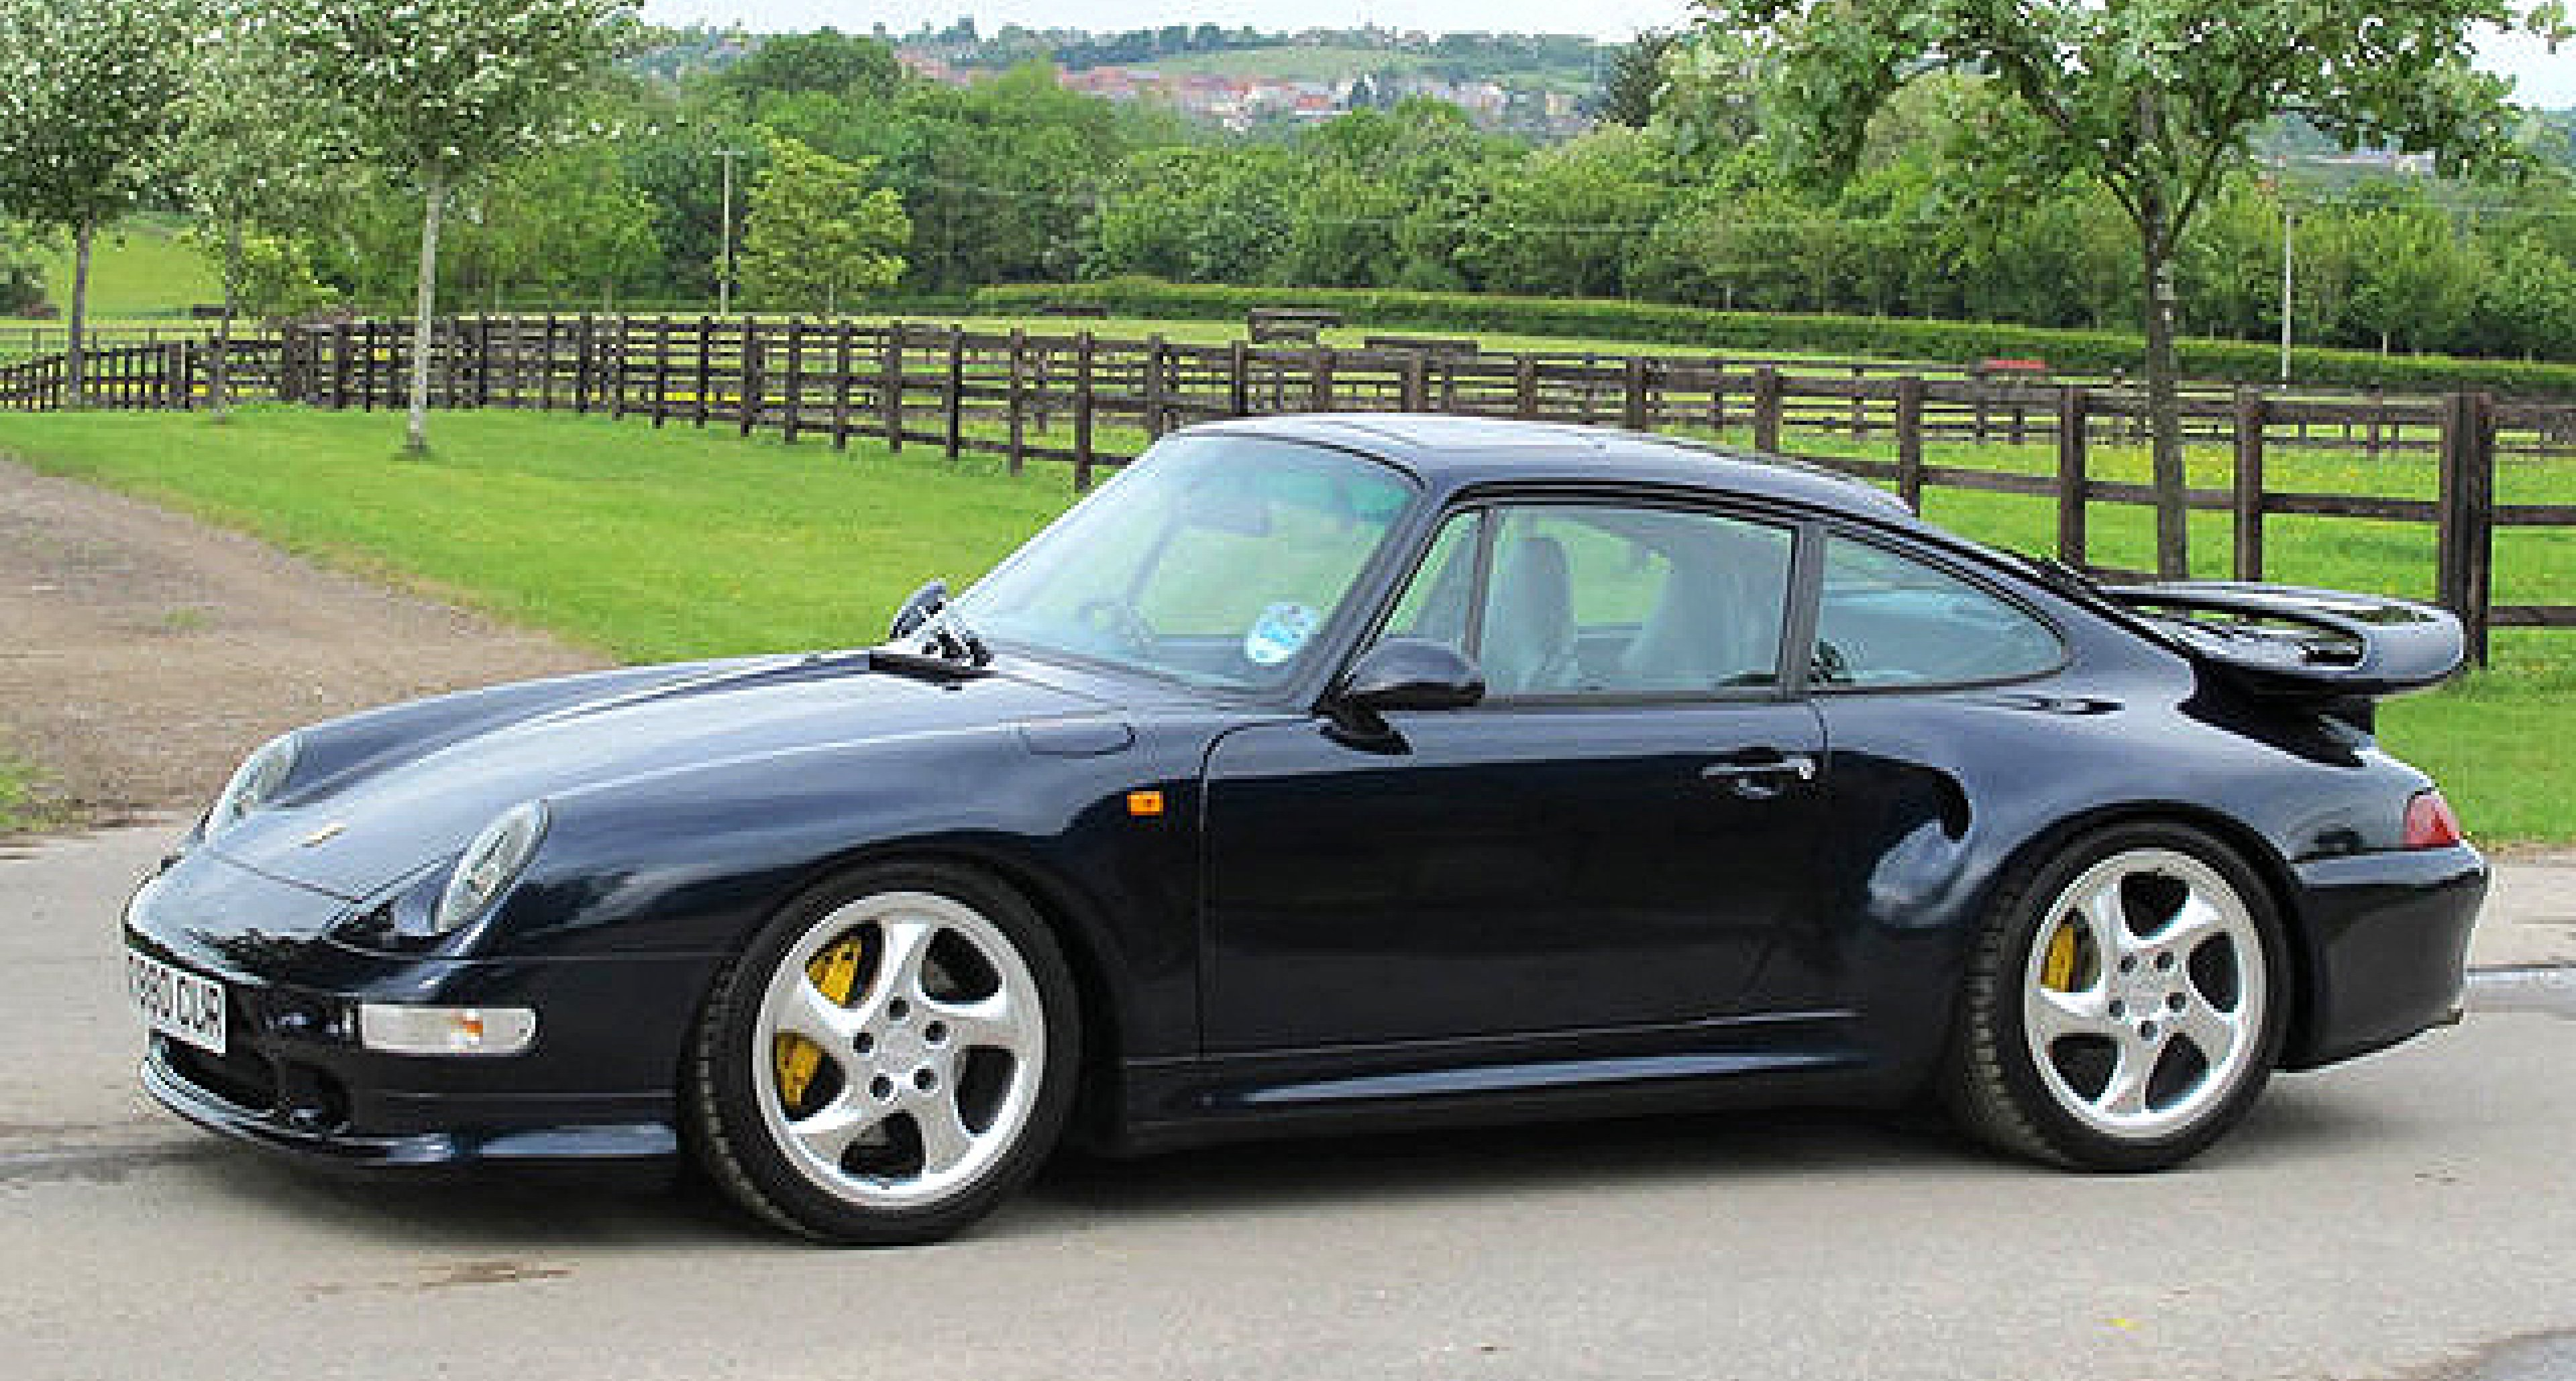 Porsche 911 Turbo Generations: The art of peer pressure | Clic ...